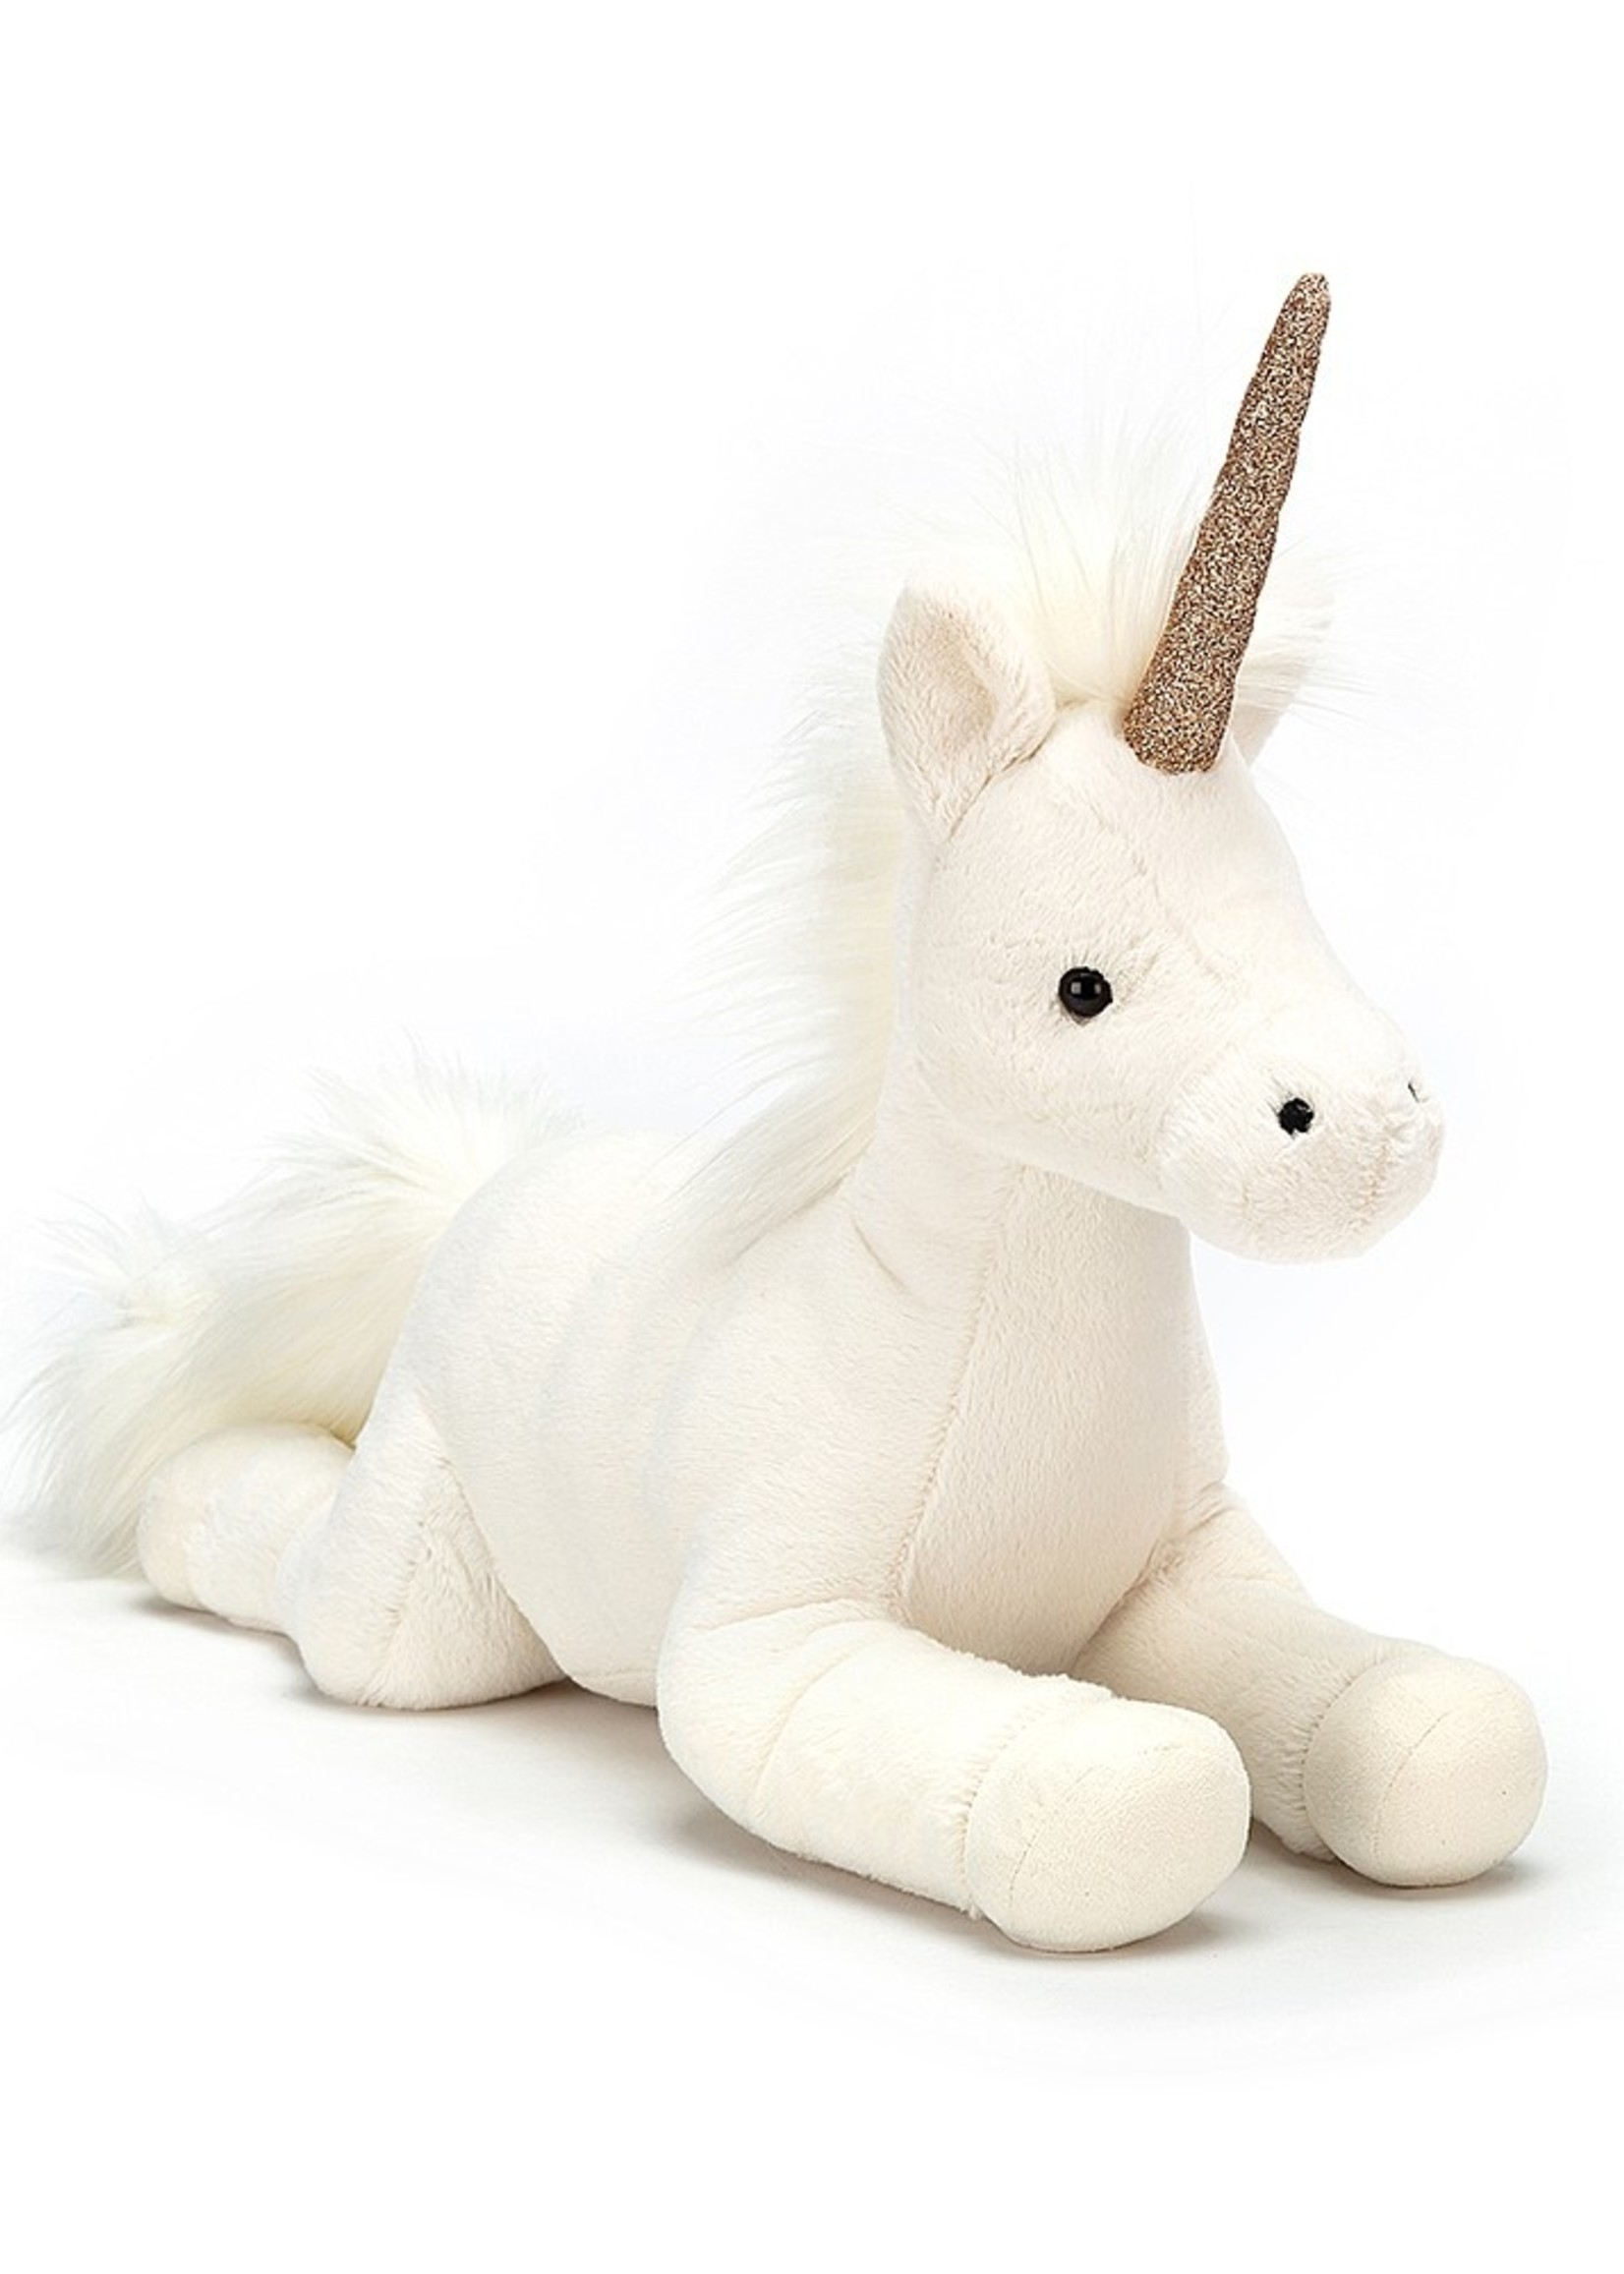 JELLYCAT JELLYCAT SMALL LUNA UNICORN